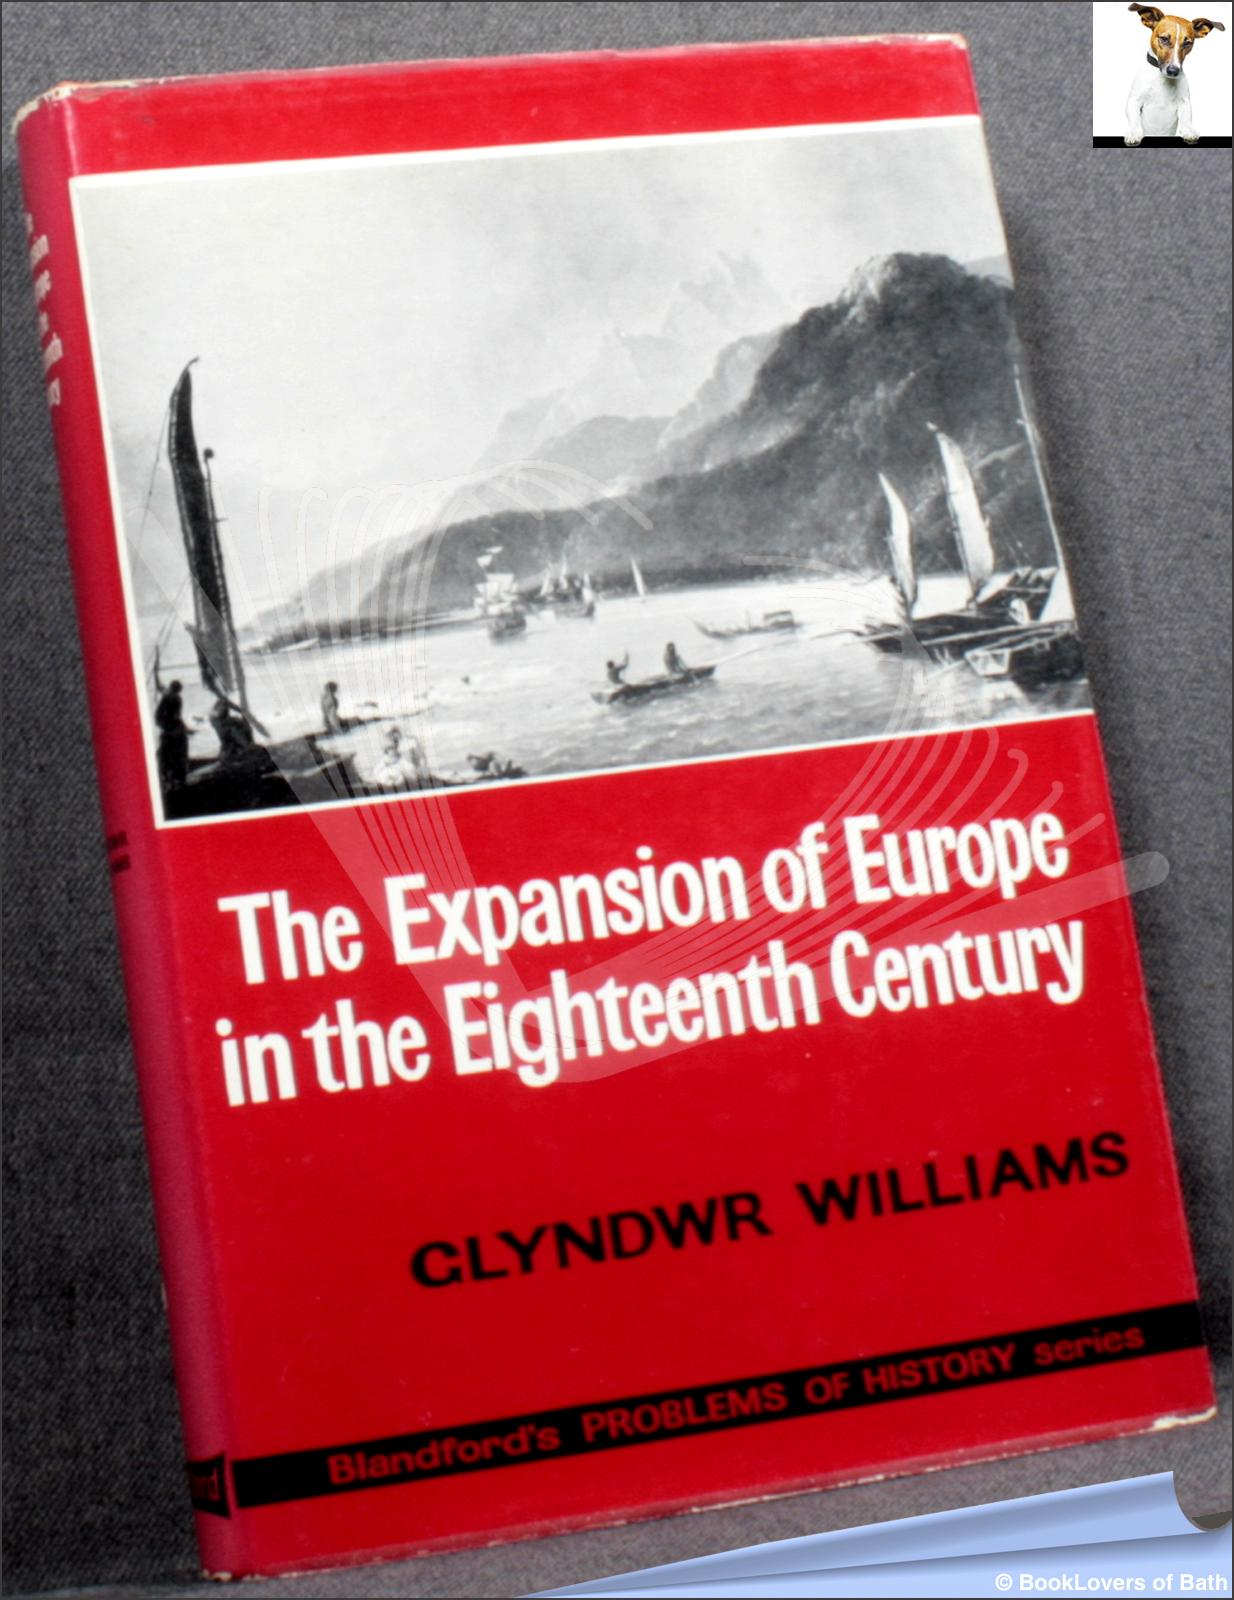 The Expansion of Europe in the Eighteenth Century - Glyndwr Williams